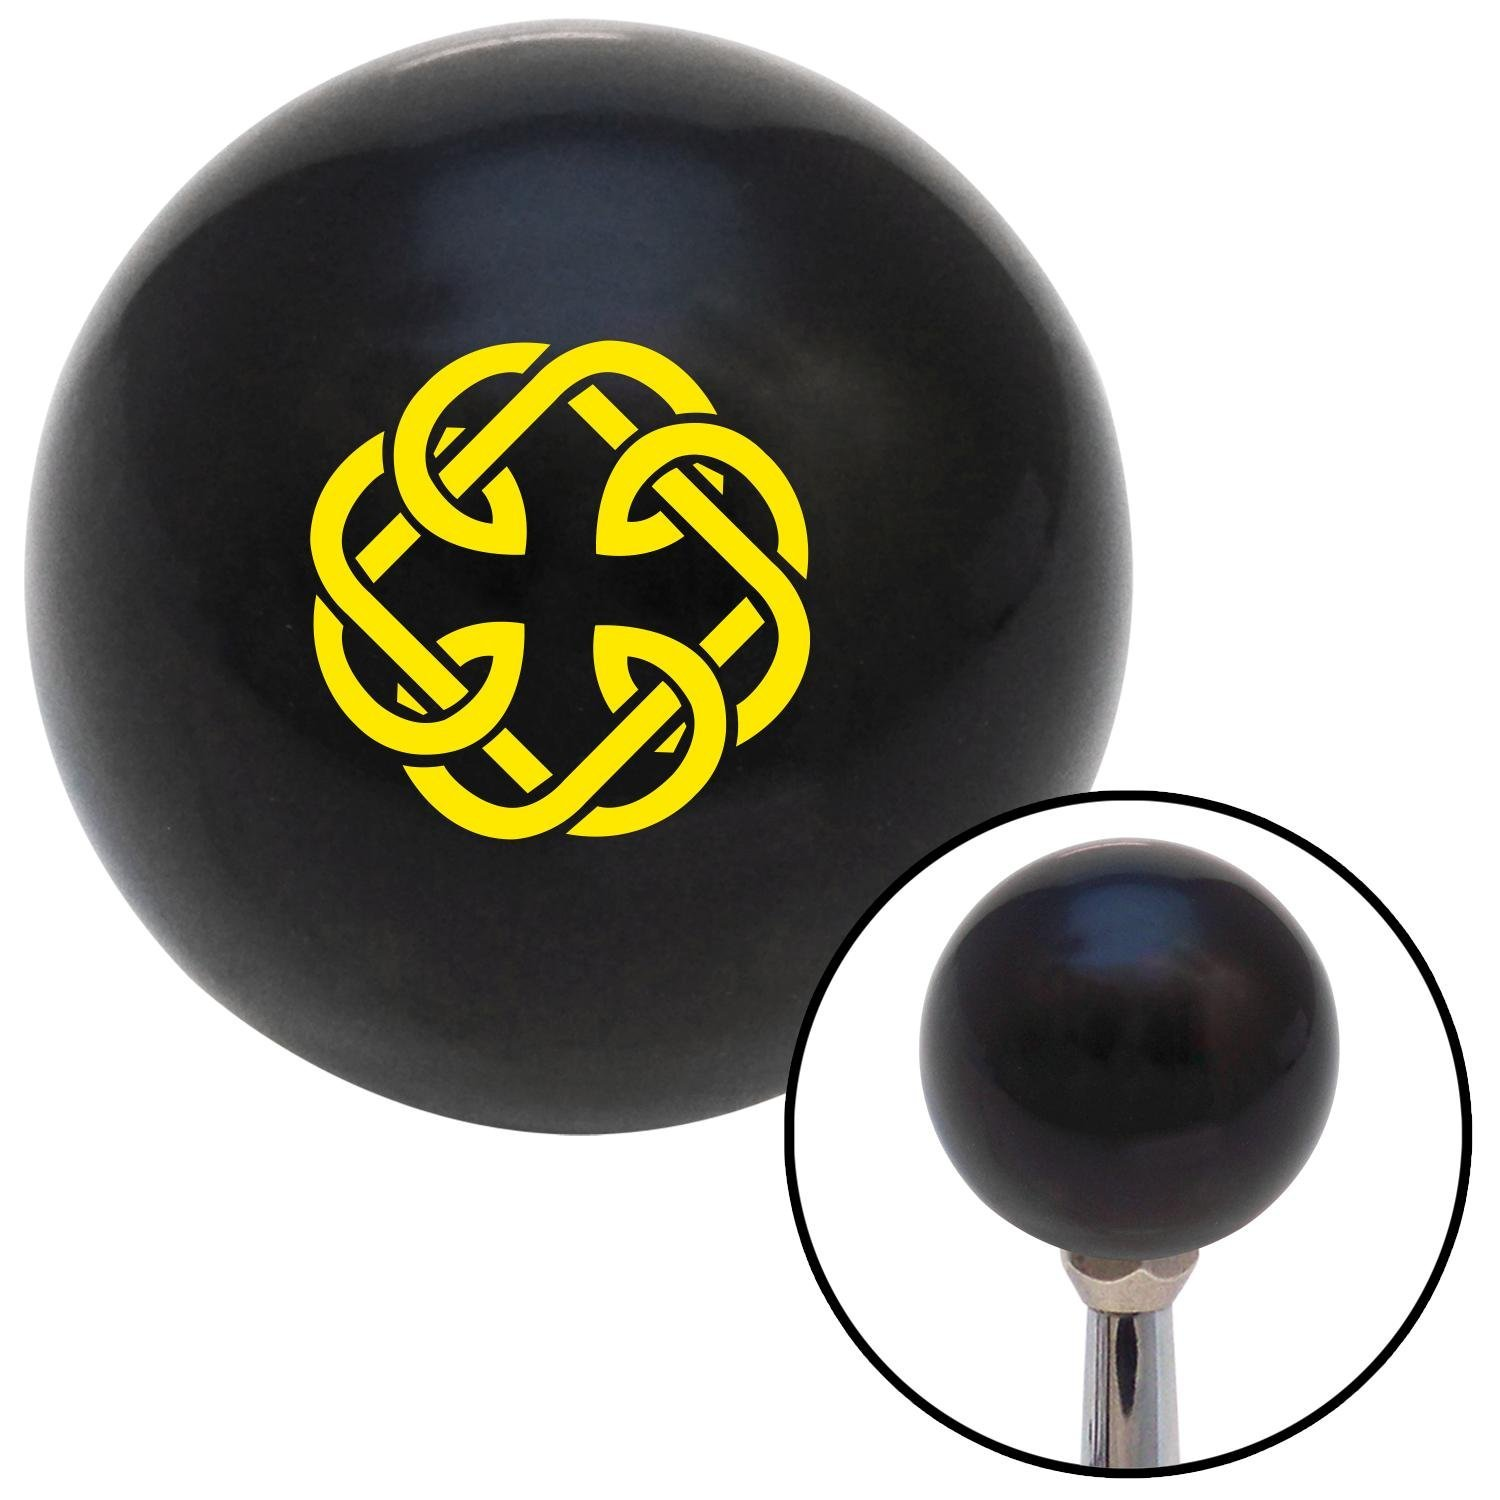 American Shifter 109975 Black Shift Knob with M16 x 1.5 Insert Yellow Celtic Father Daughter Symbol